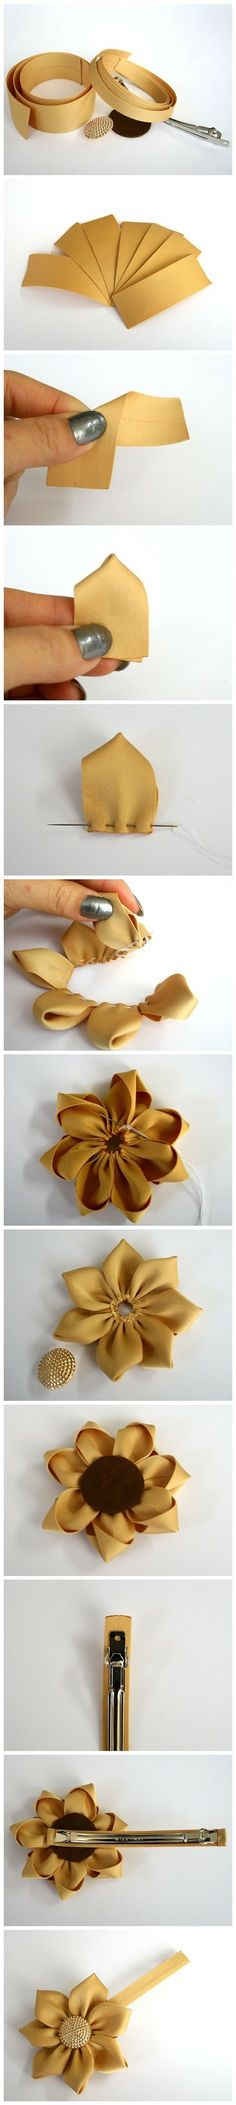 DIY Sunflower hair pin. Needle, thread, fabric, snap clip, circular front and backing.